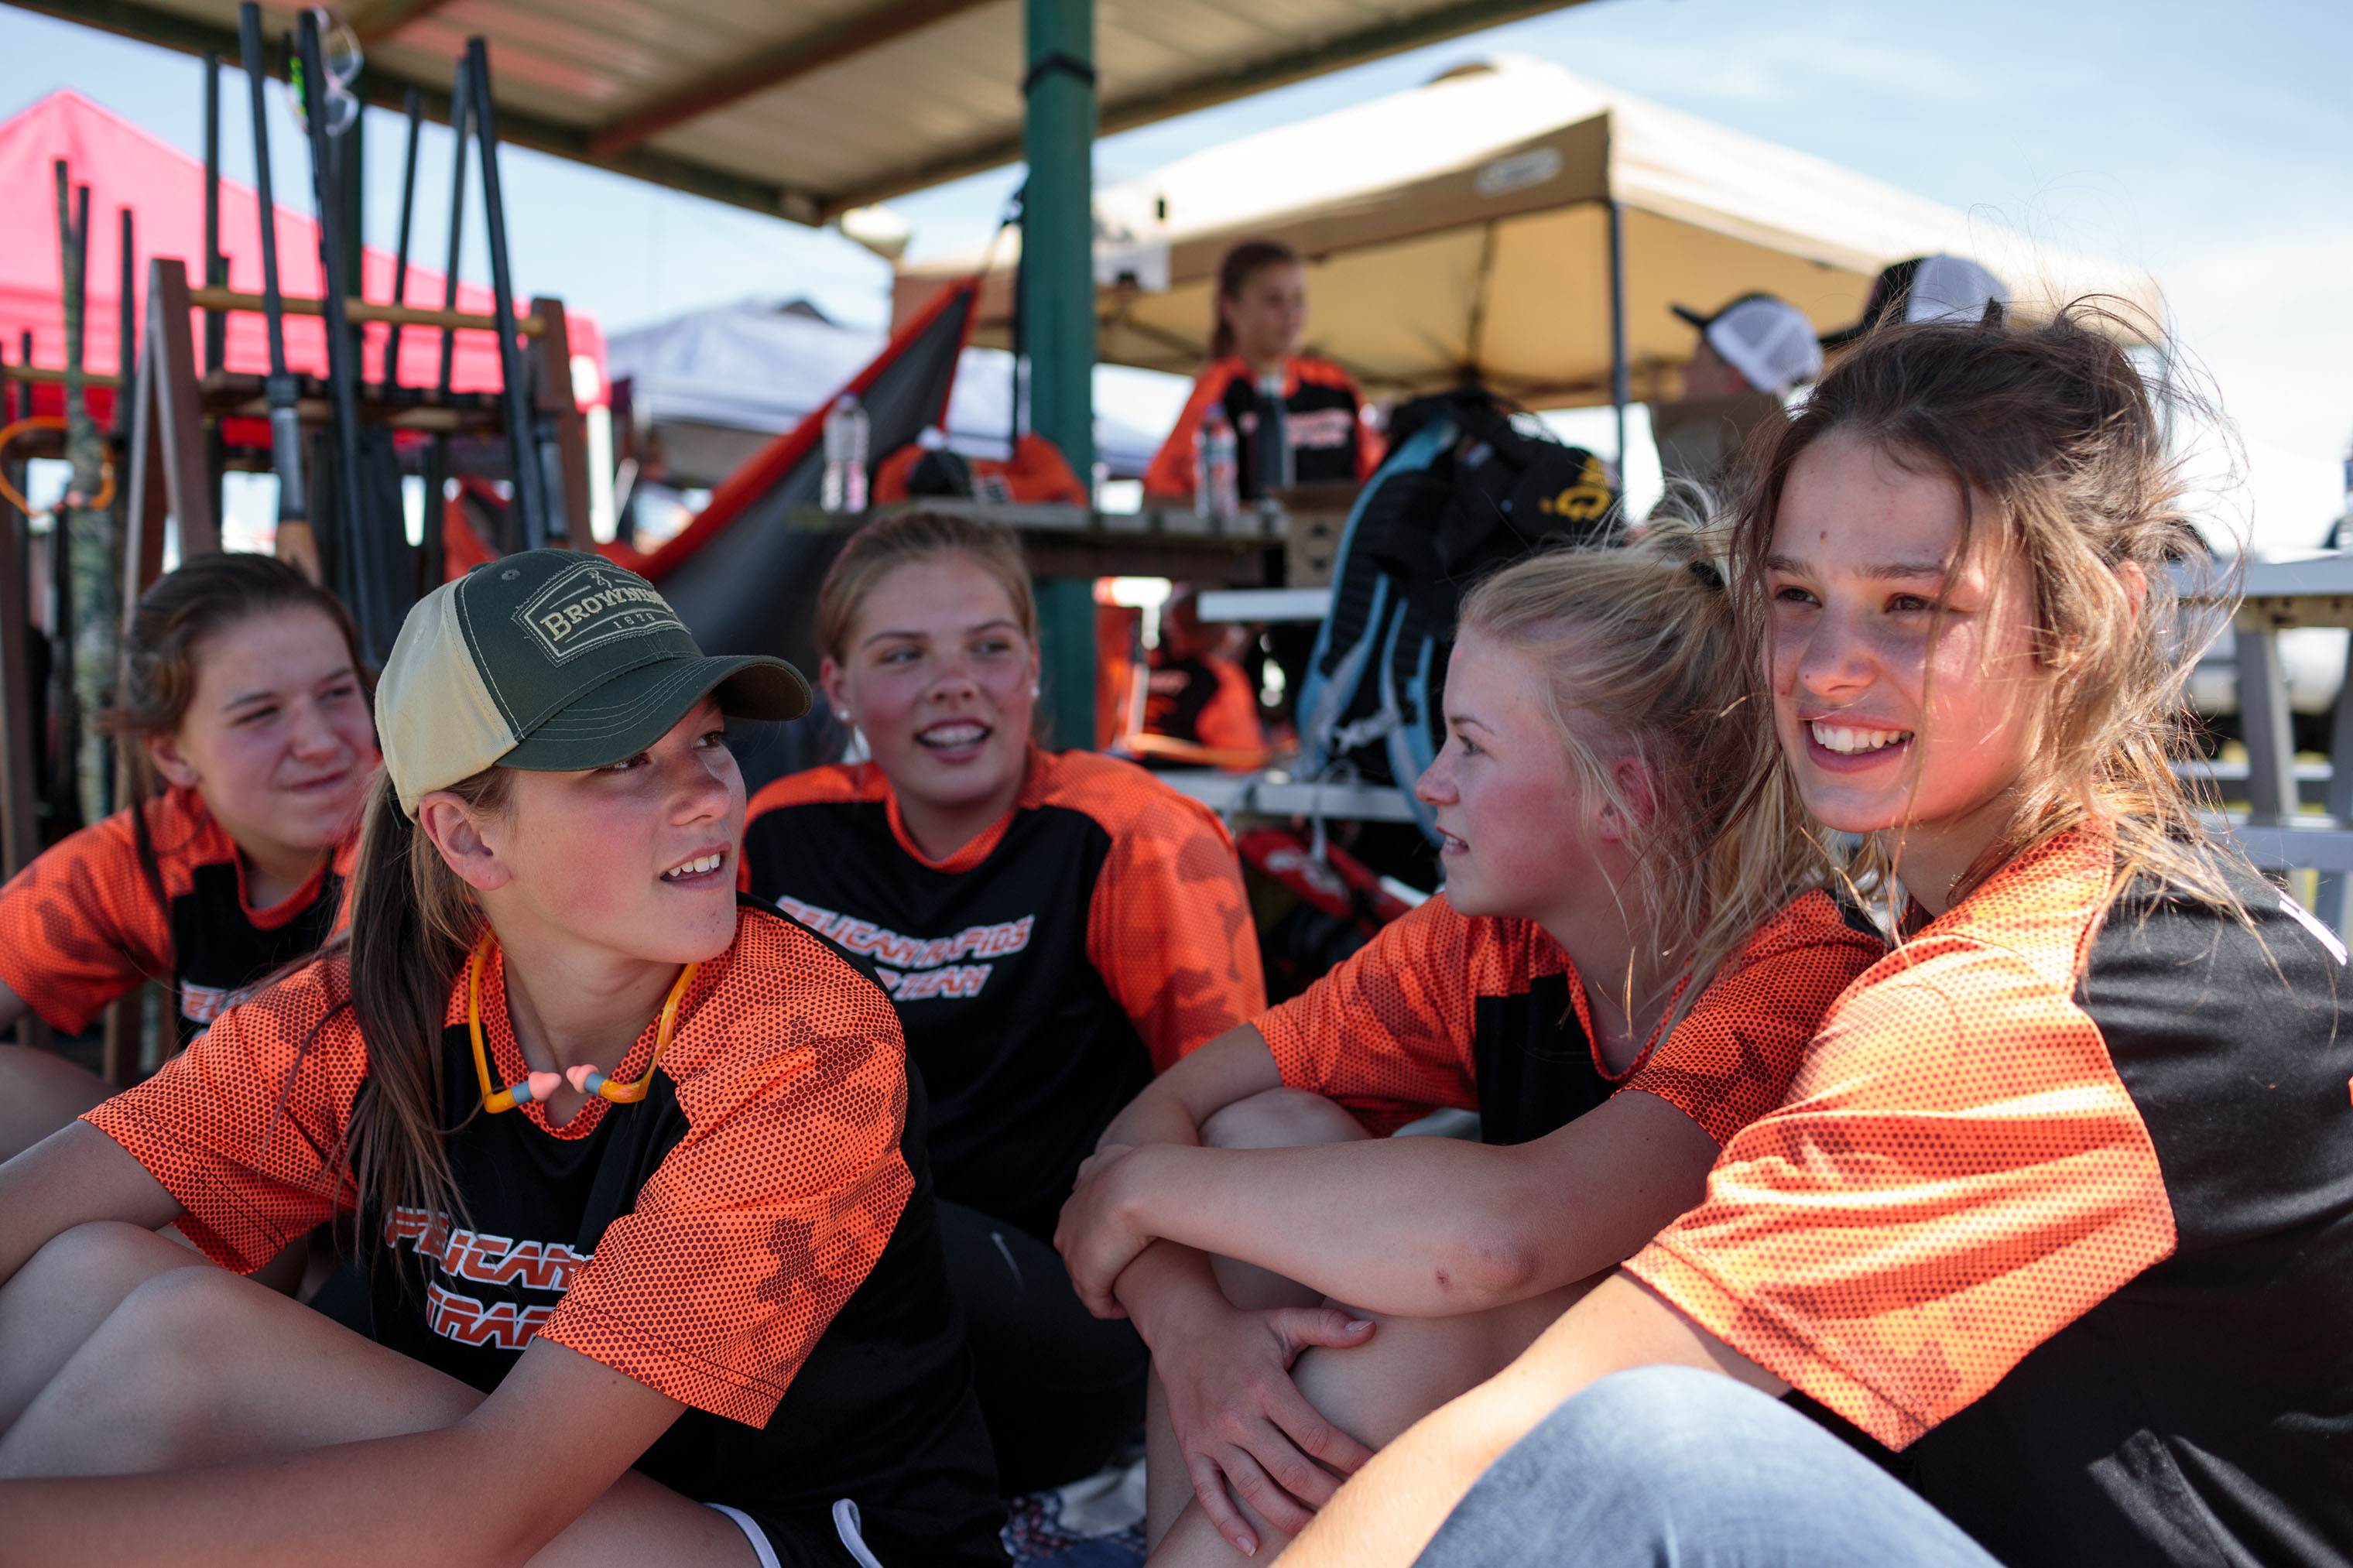 Shooters from Pelican Rapids, MN, hang out together after finishing their competition.